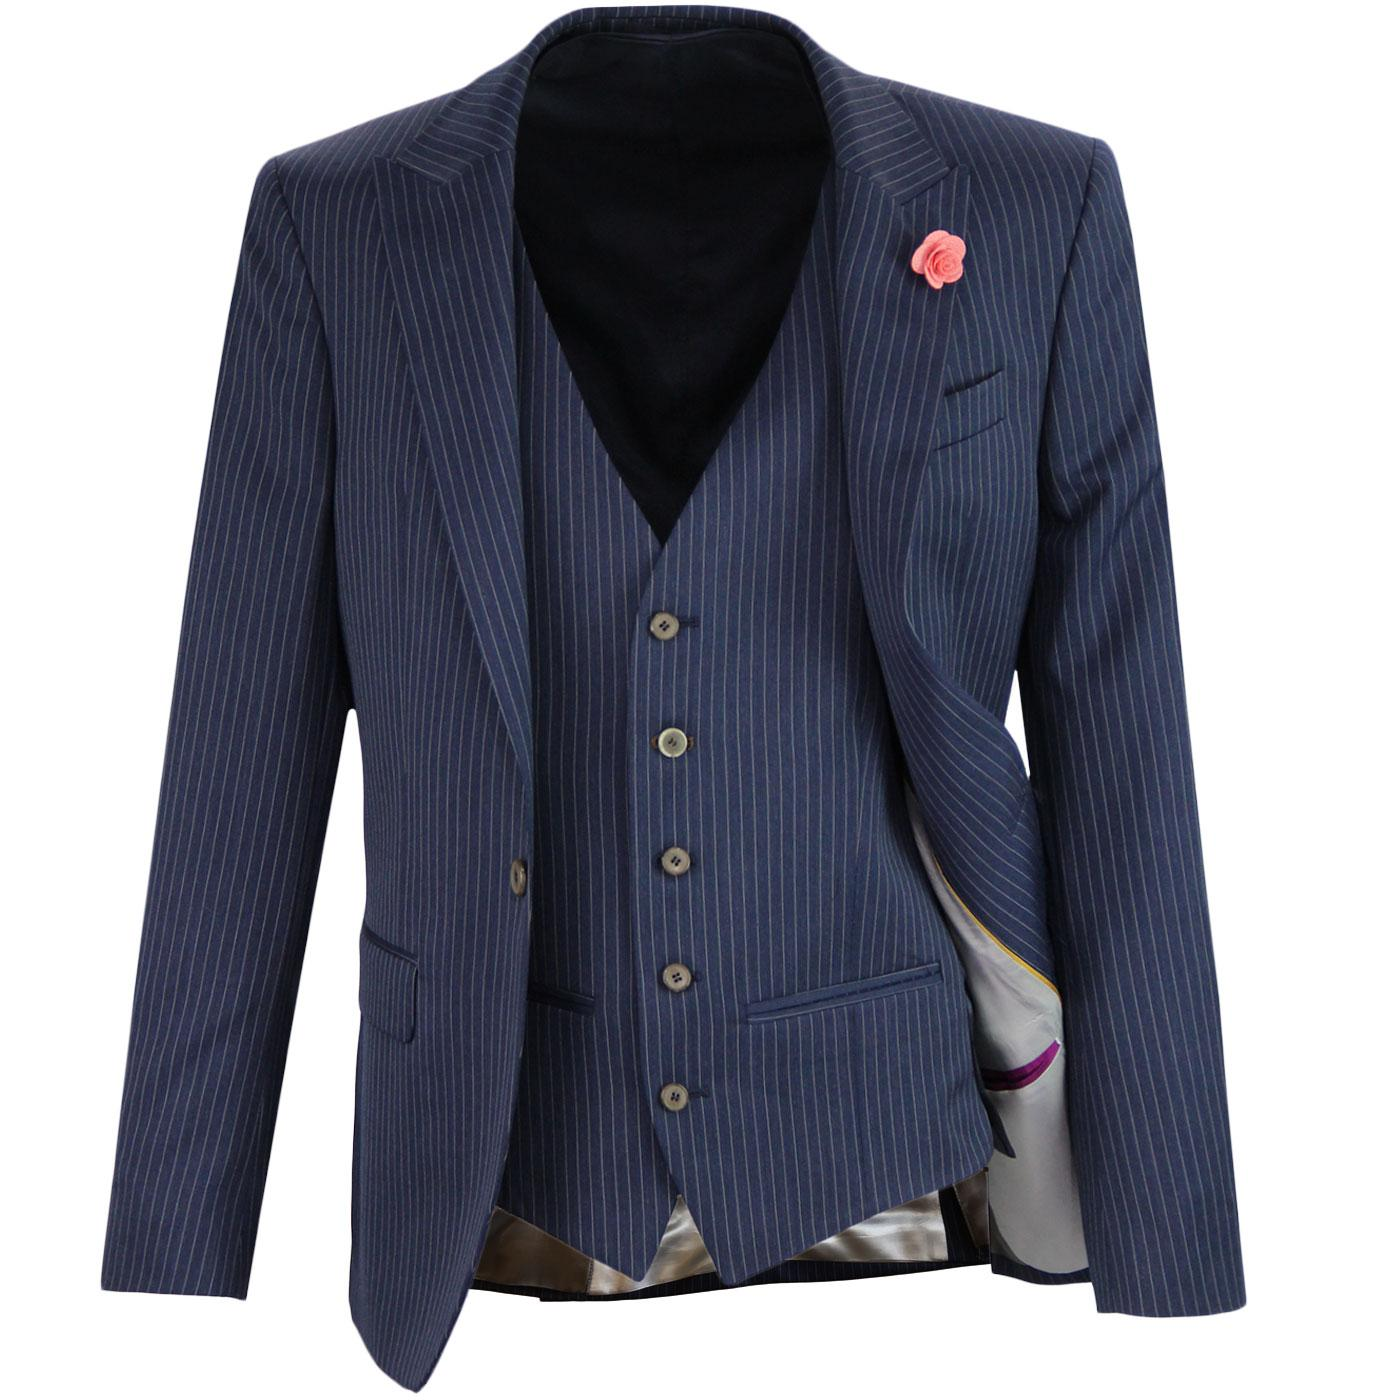 Mens Retro 60s Mod 3 Piece Pinstripe Suit